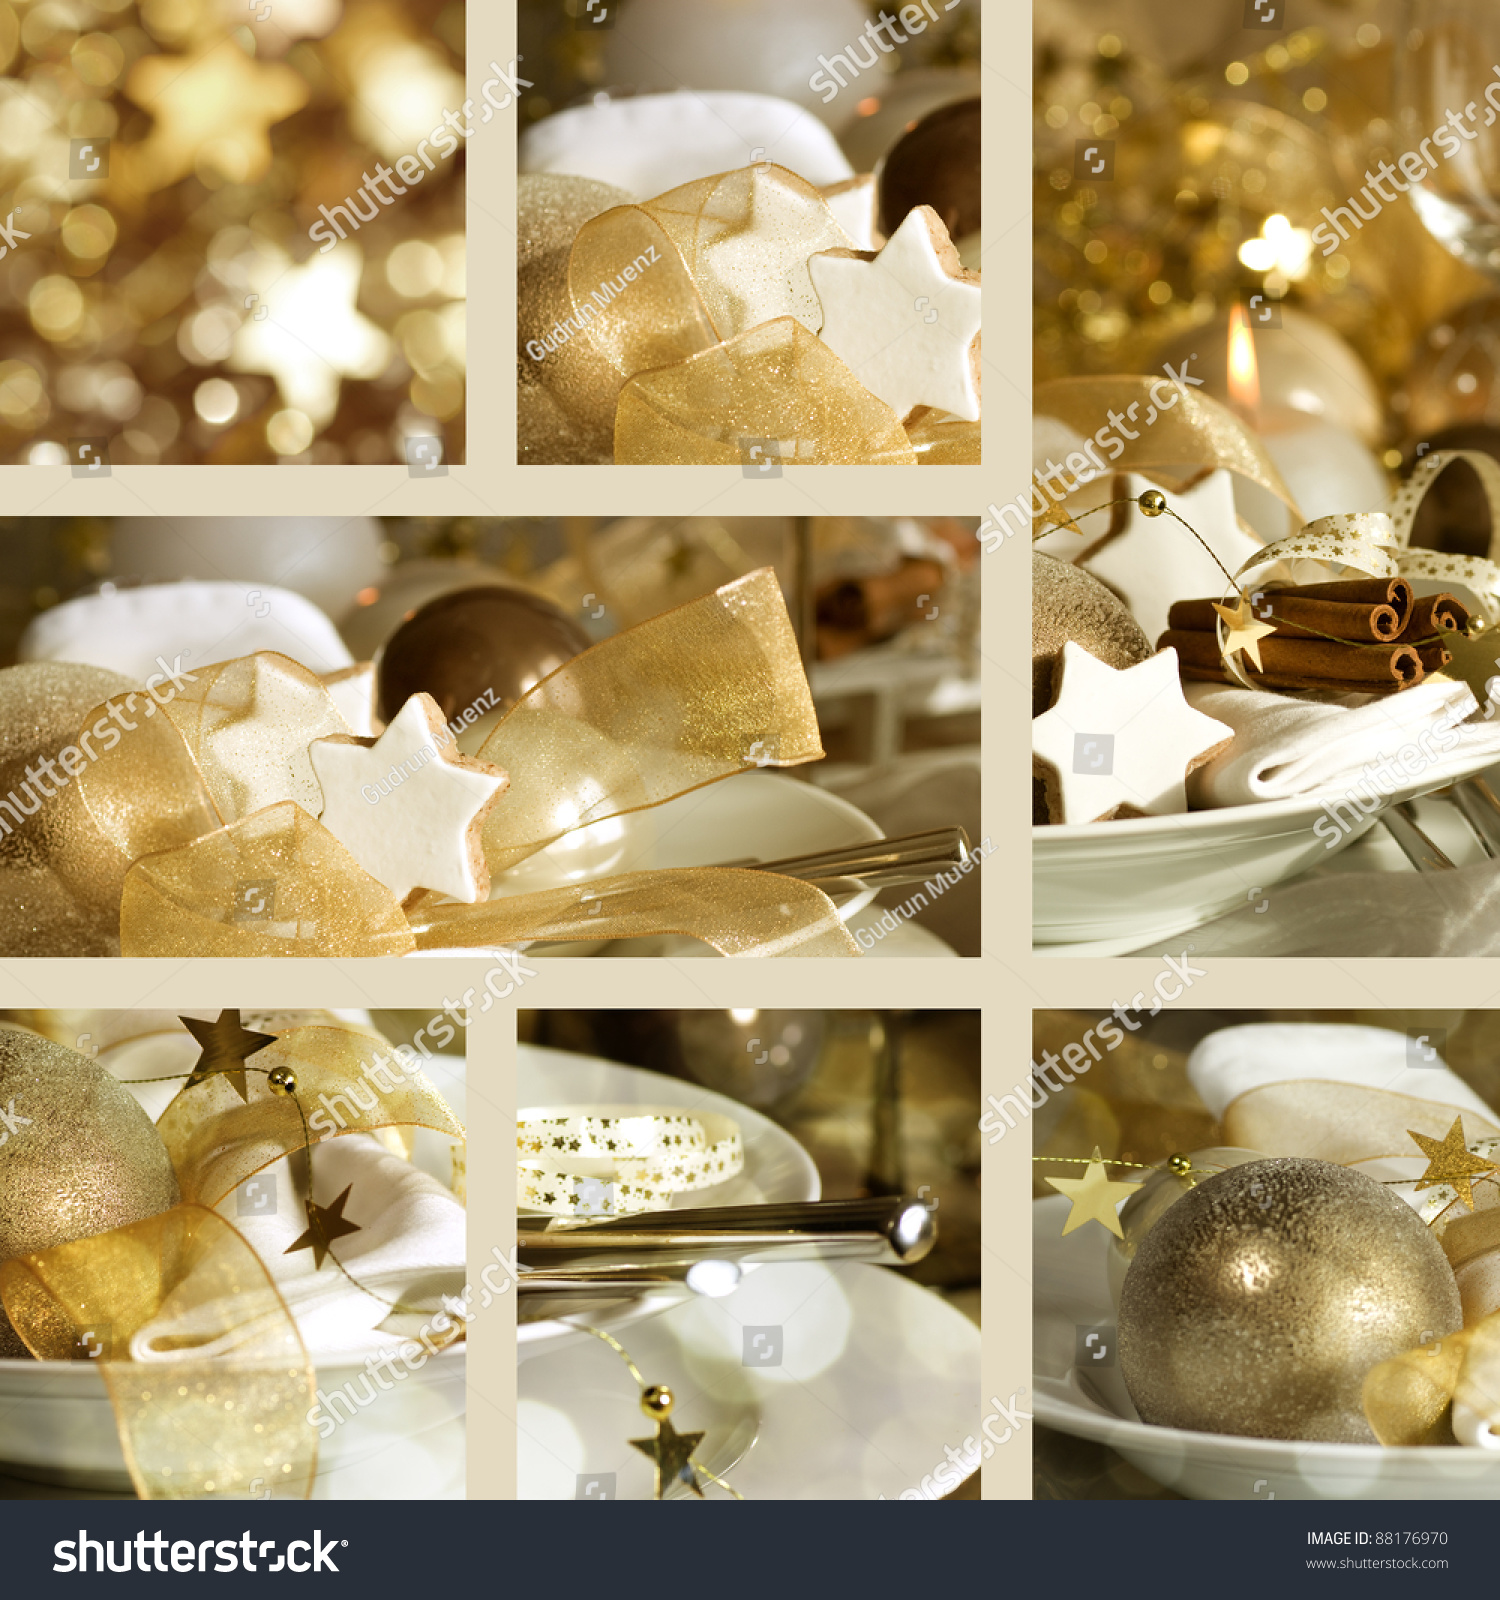 Swell Collage Fine Christmas Table Decorations Stock Photo Edit Download Free Architecture Designs Scobabritishbridgeorg